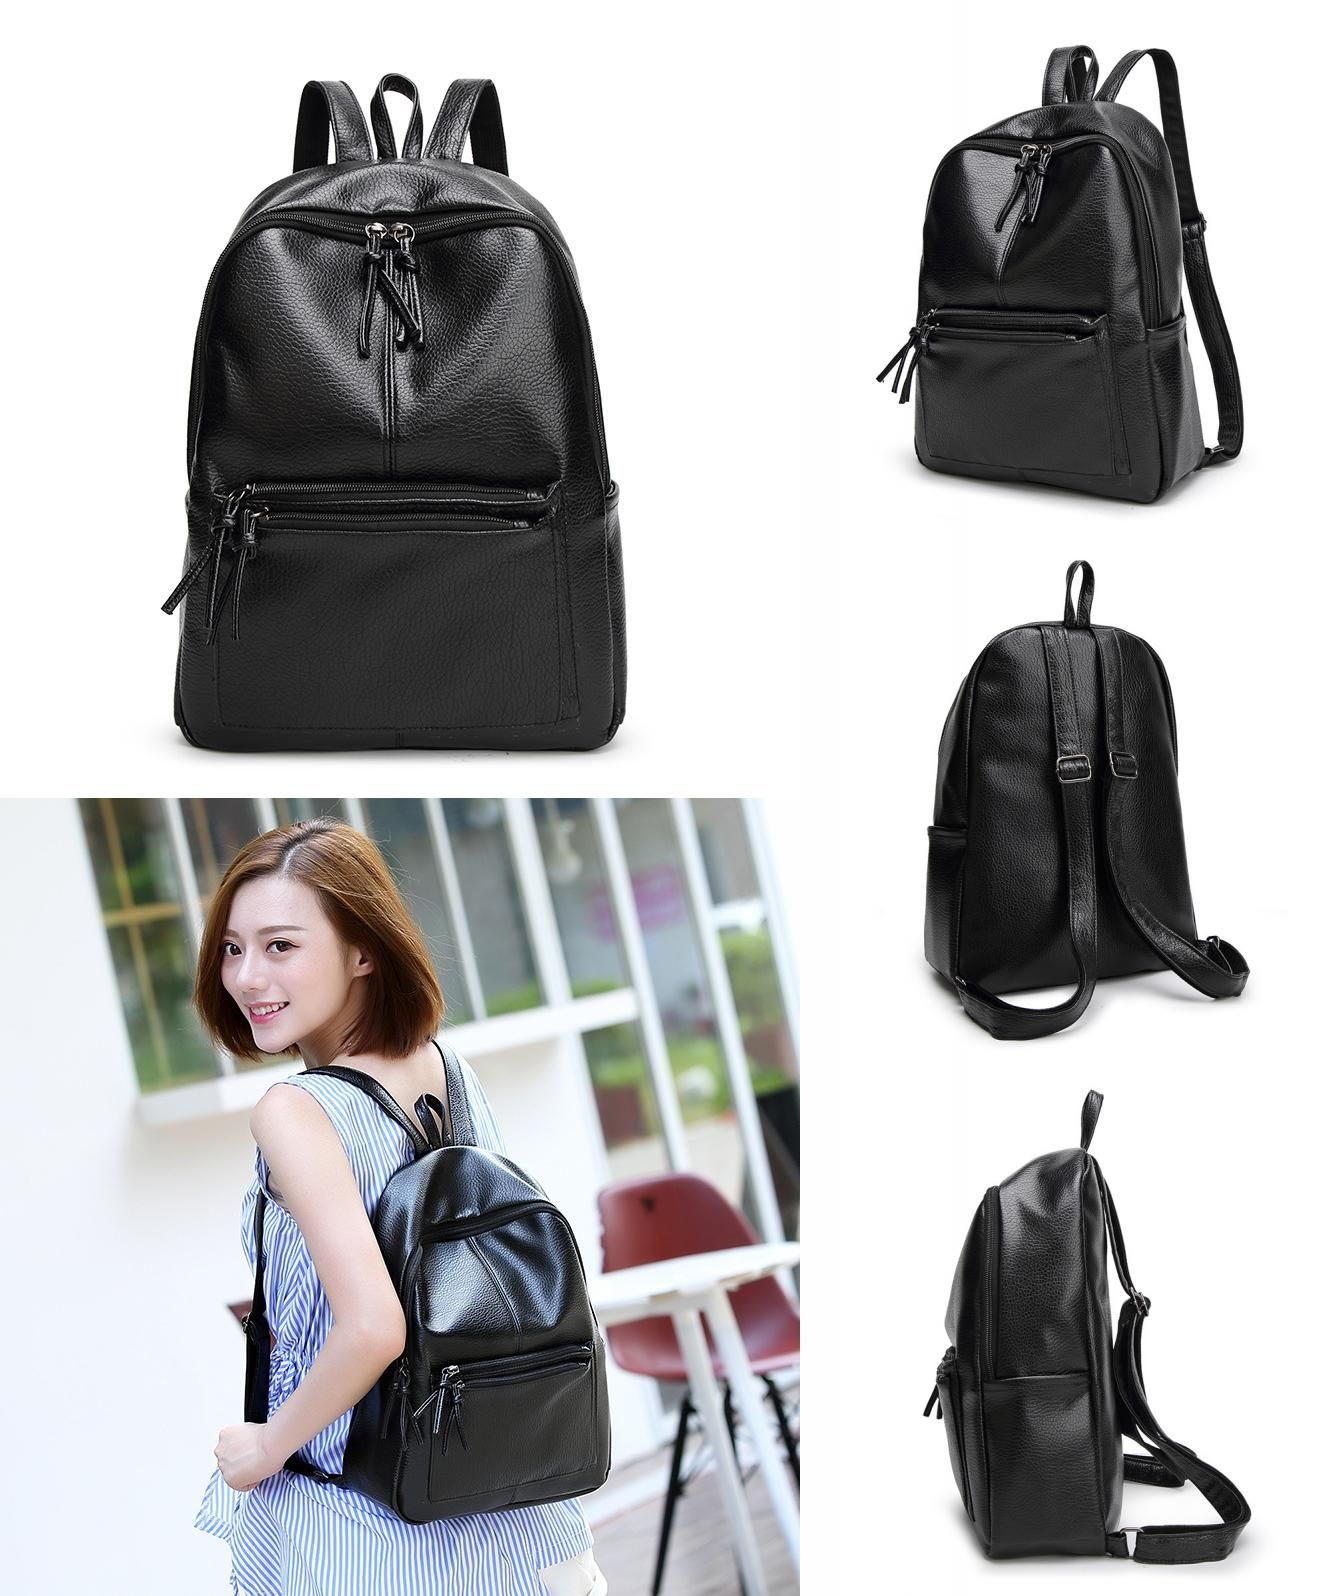 Visit to Buy] Leather Backpack Women Designer bags High Quality ...